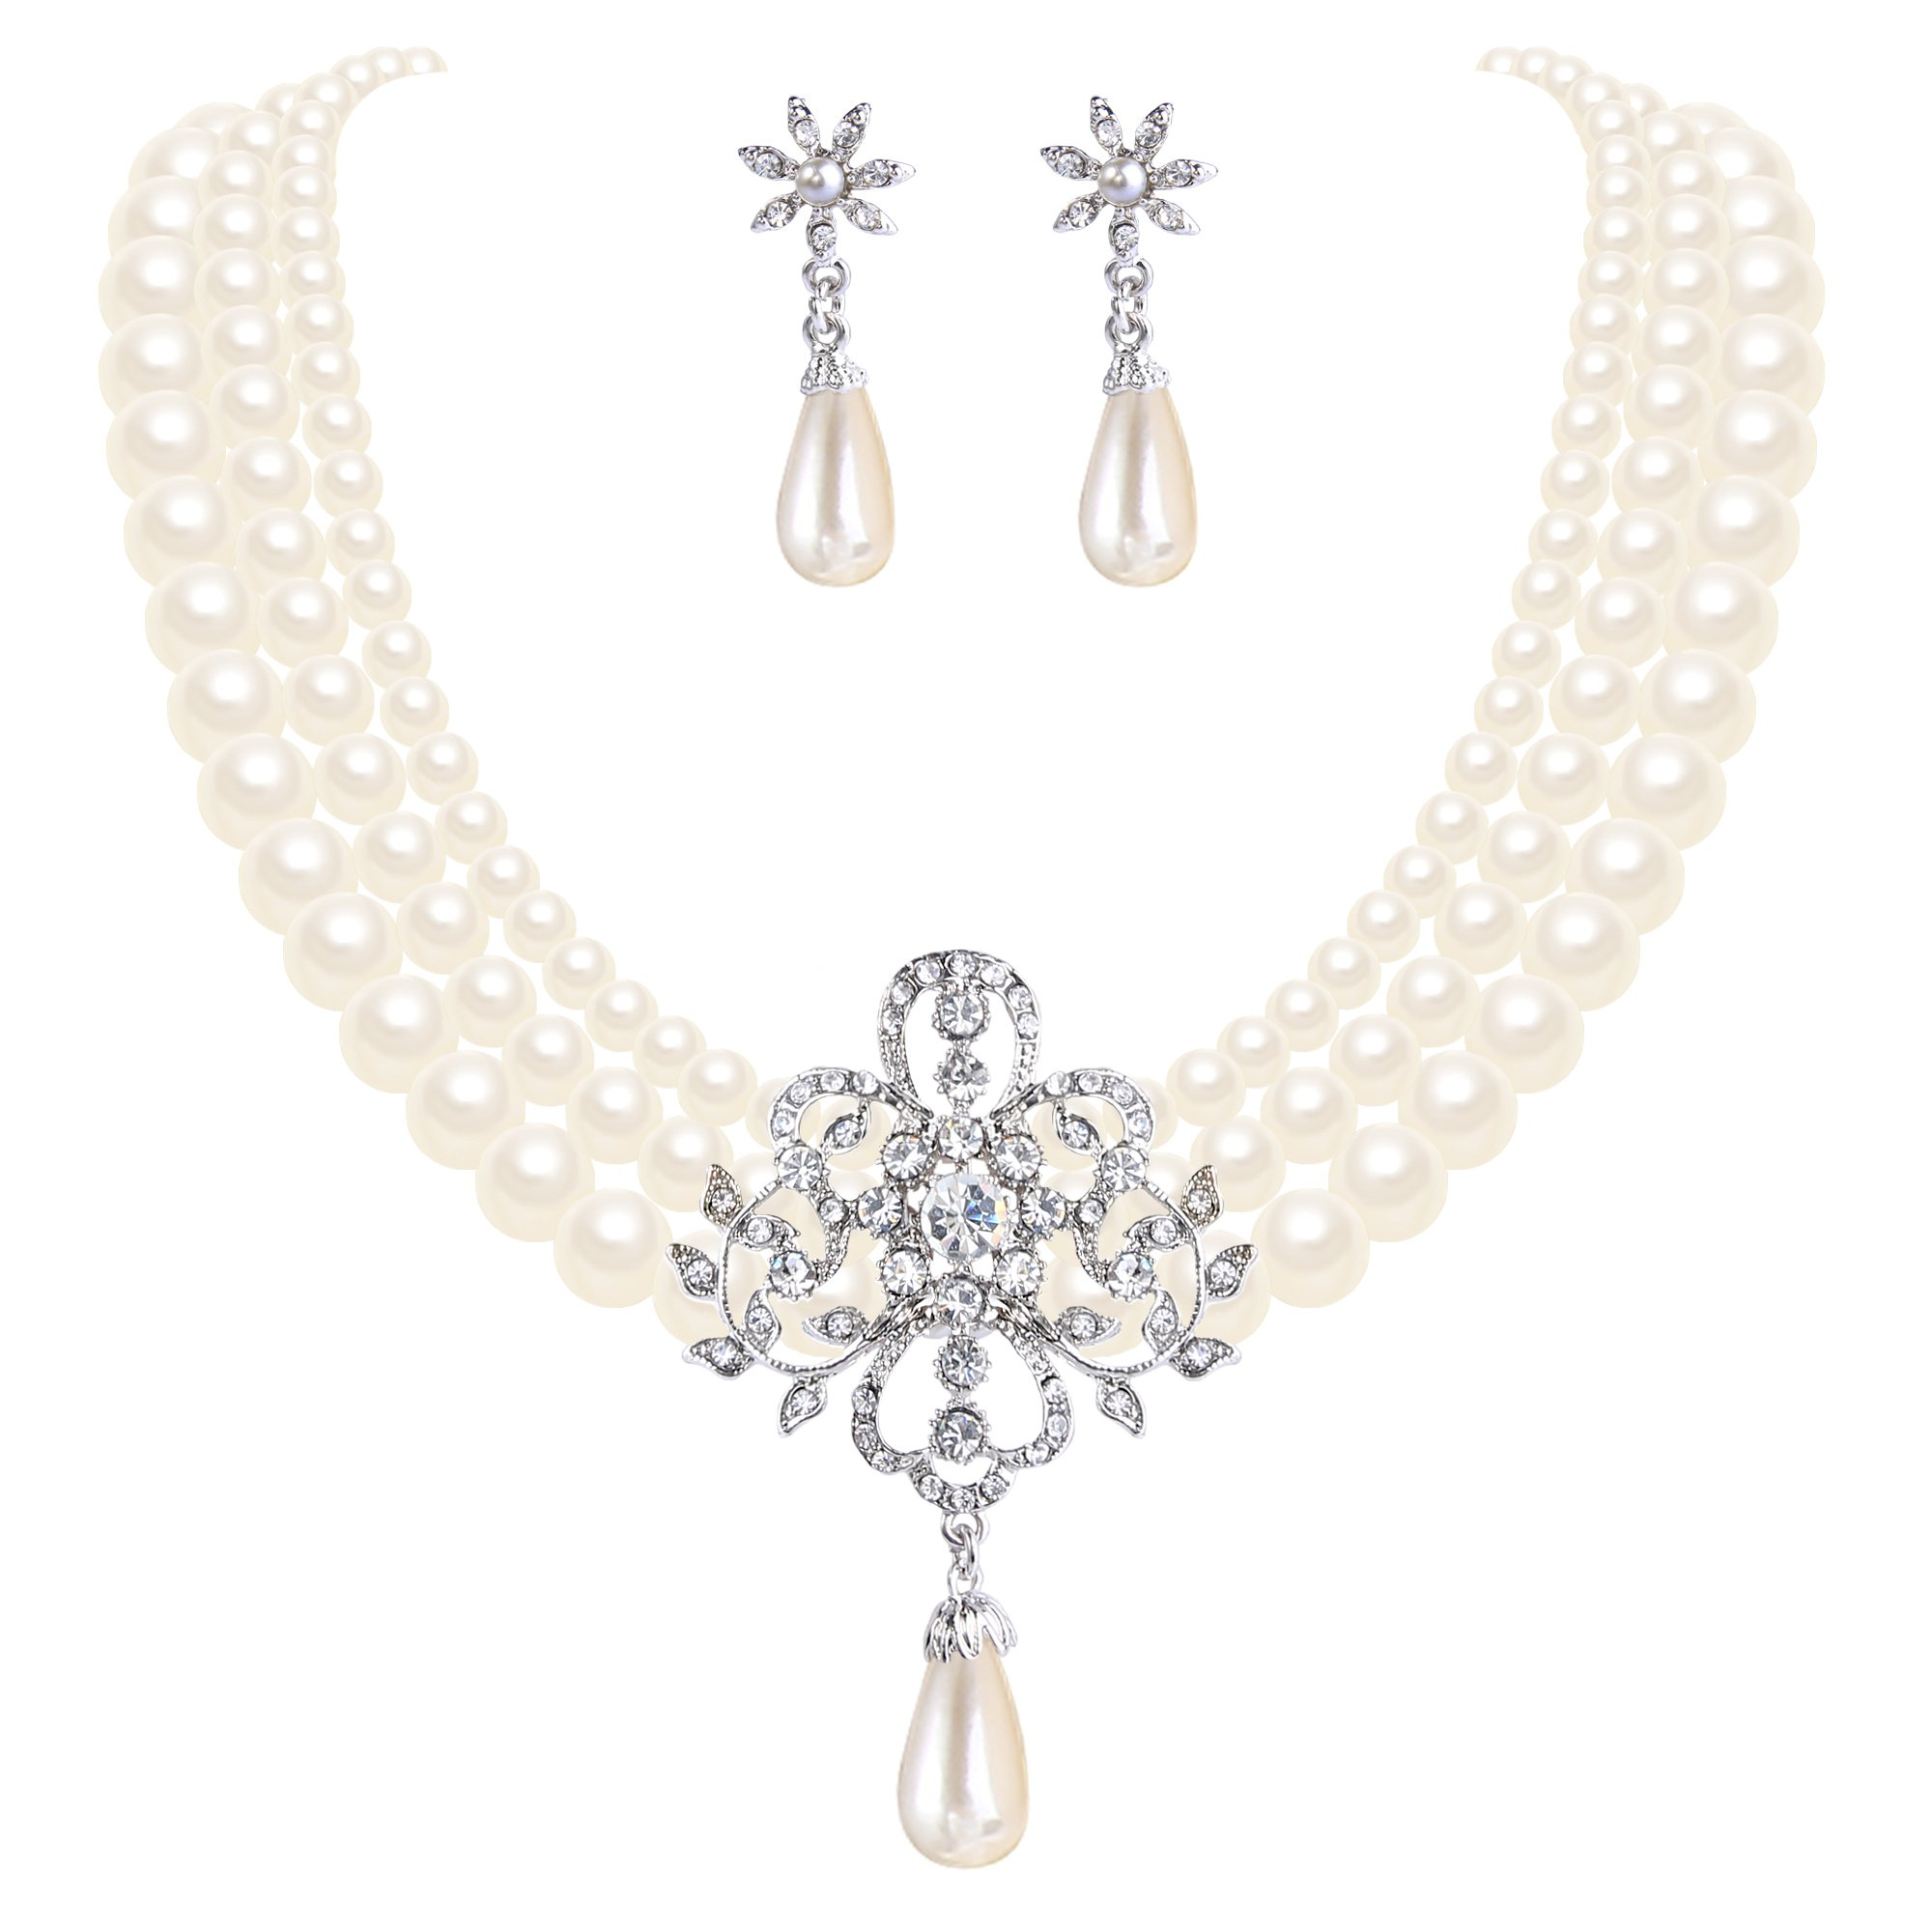 EleQueen Women's Silver-tone Simulated Pearl Crystal Victorian Style Flower Wedding Jewelry Sets For Brides Ivory Color